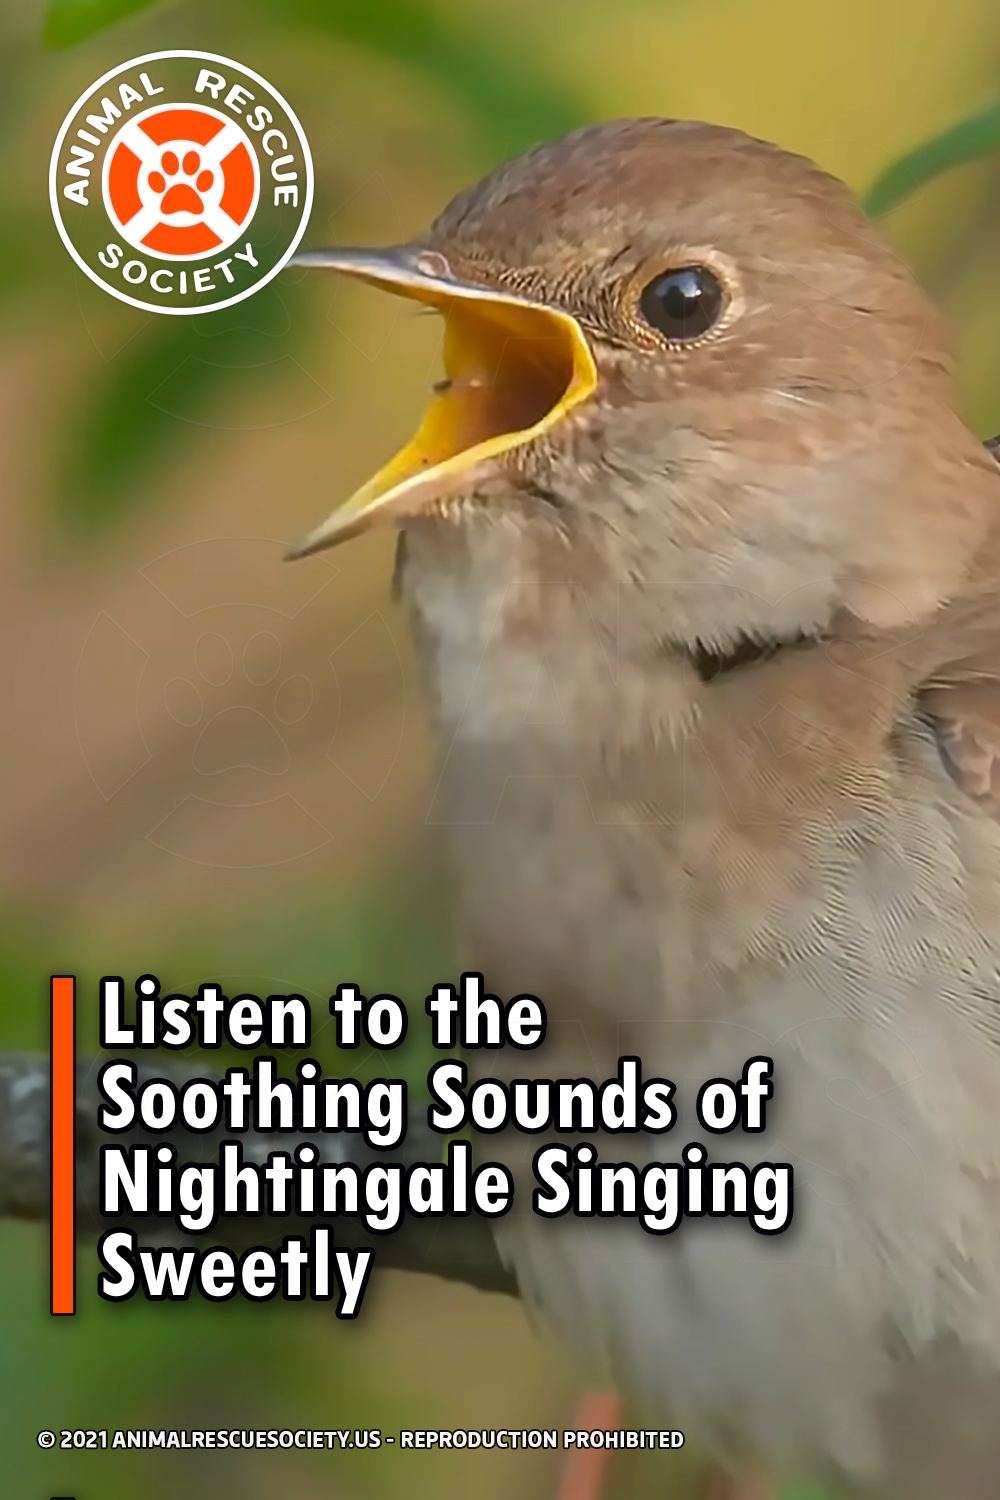 Listen to the Soothing Sounds of Nightingale Singing Sweetly